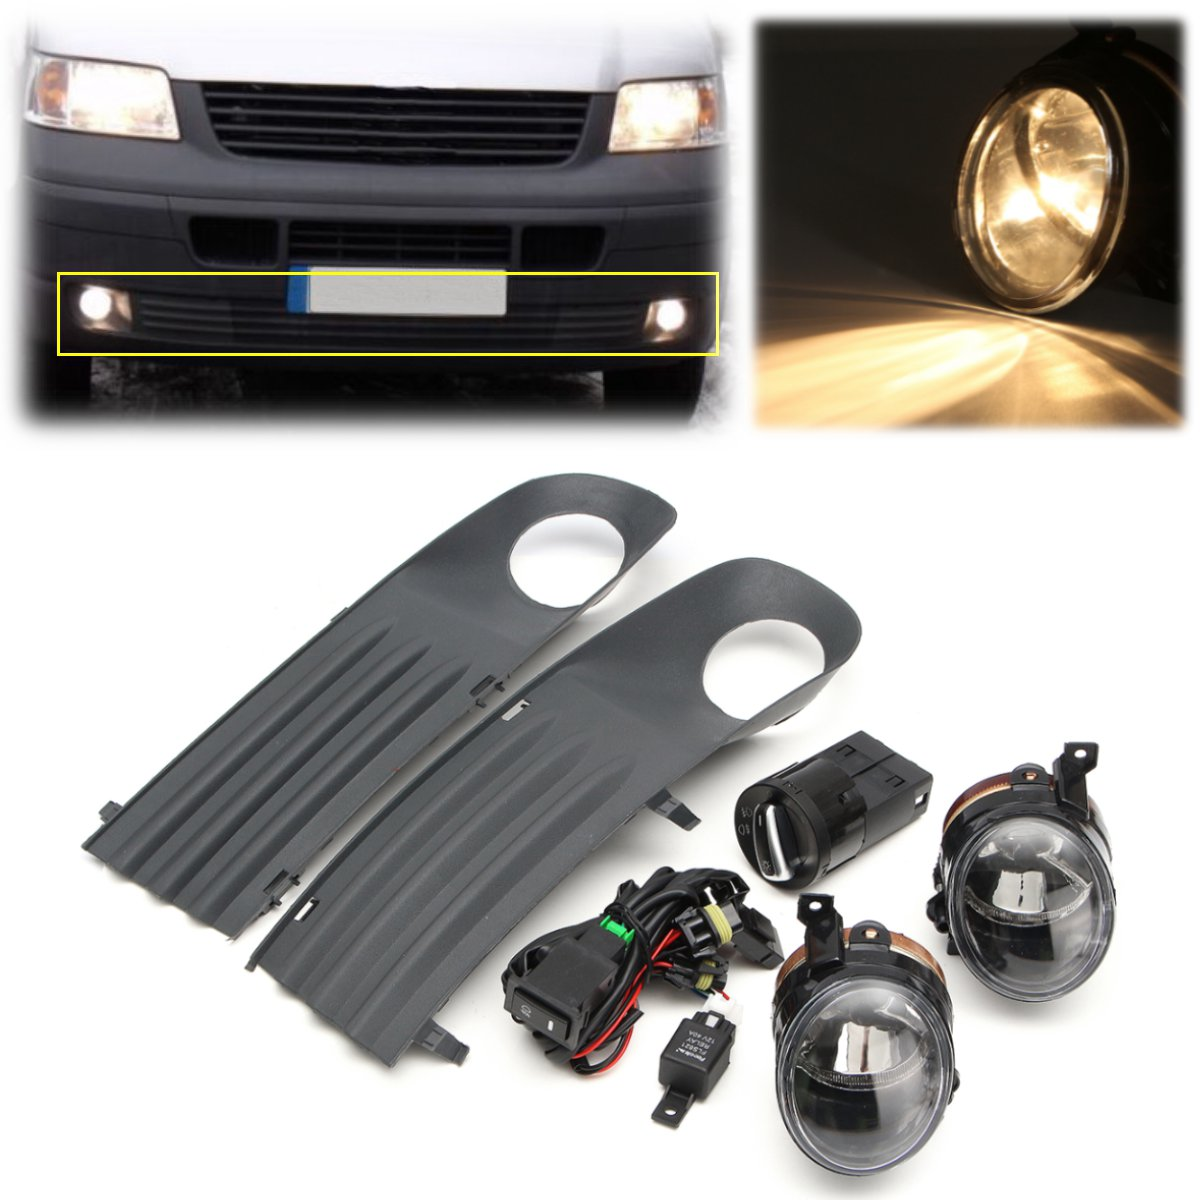 55W Front Left Right Foglight Grille Kit Set w/ Wiring Headlight Switch For VW T5 TRANSPORTER 2003-2010